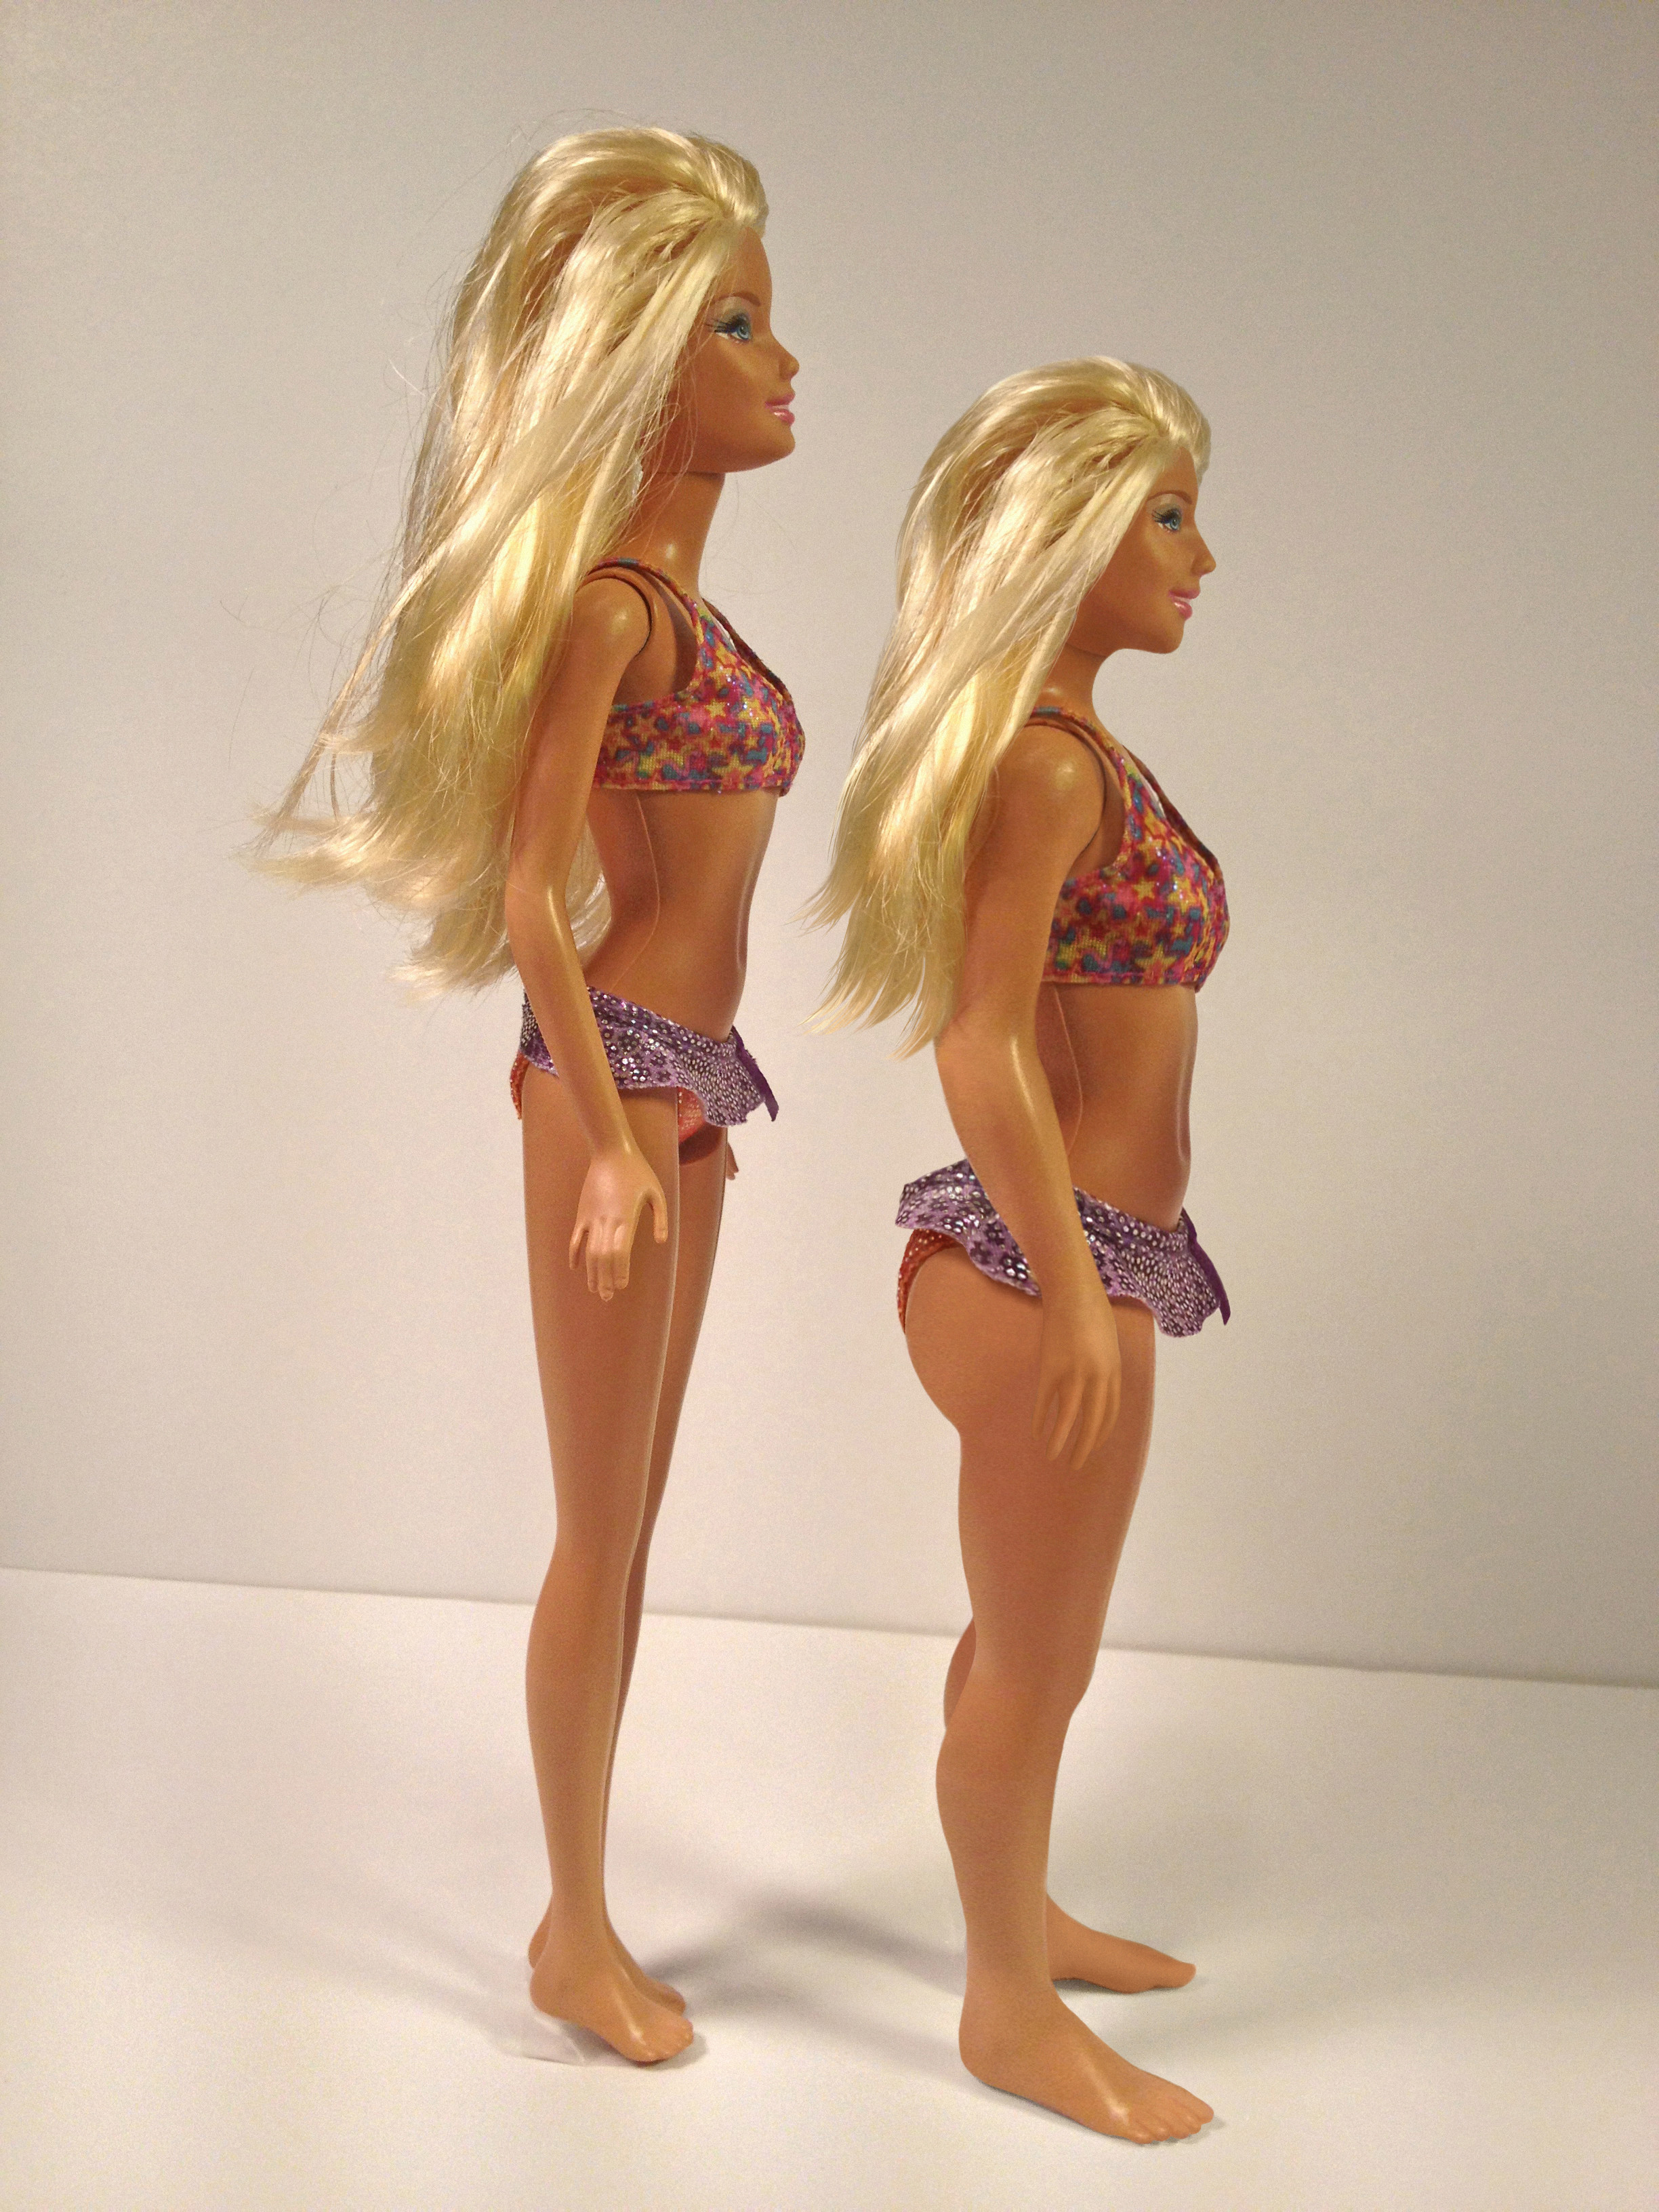 Barbie measurements human body